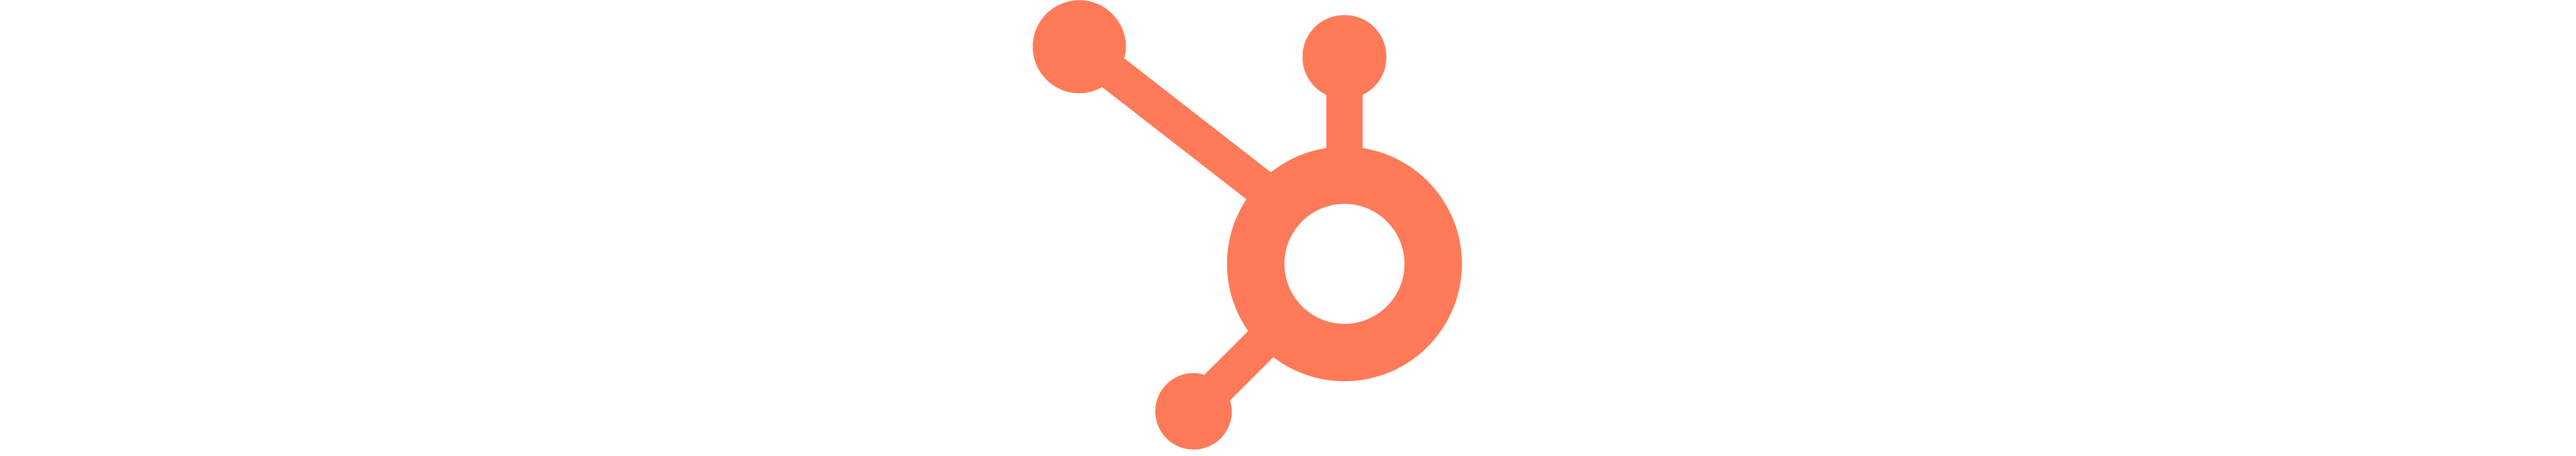 HubSpot_User_Group_Amsterdam logo wit